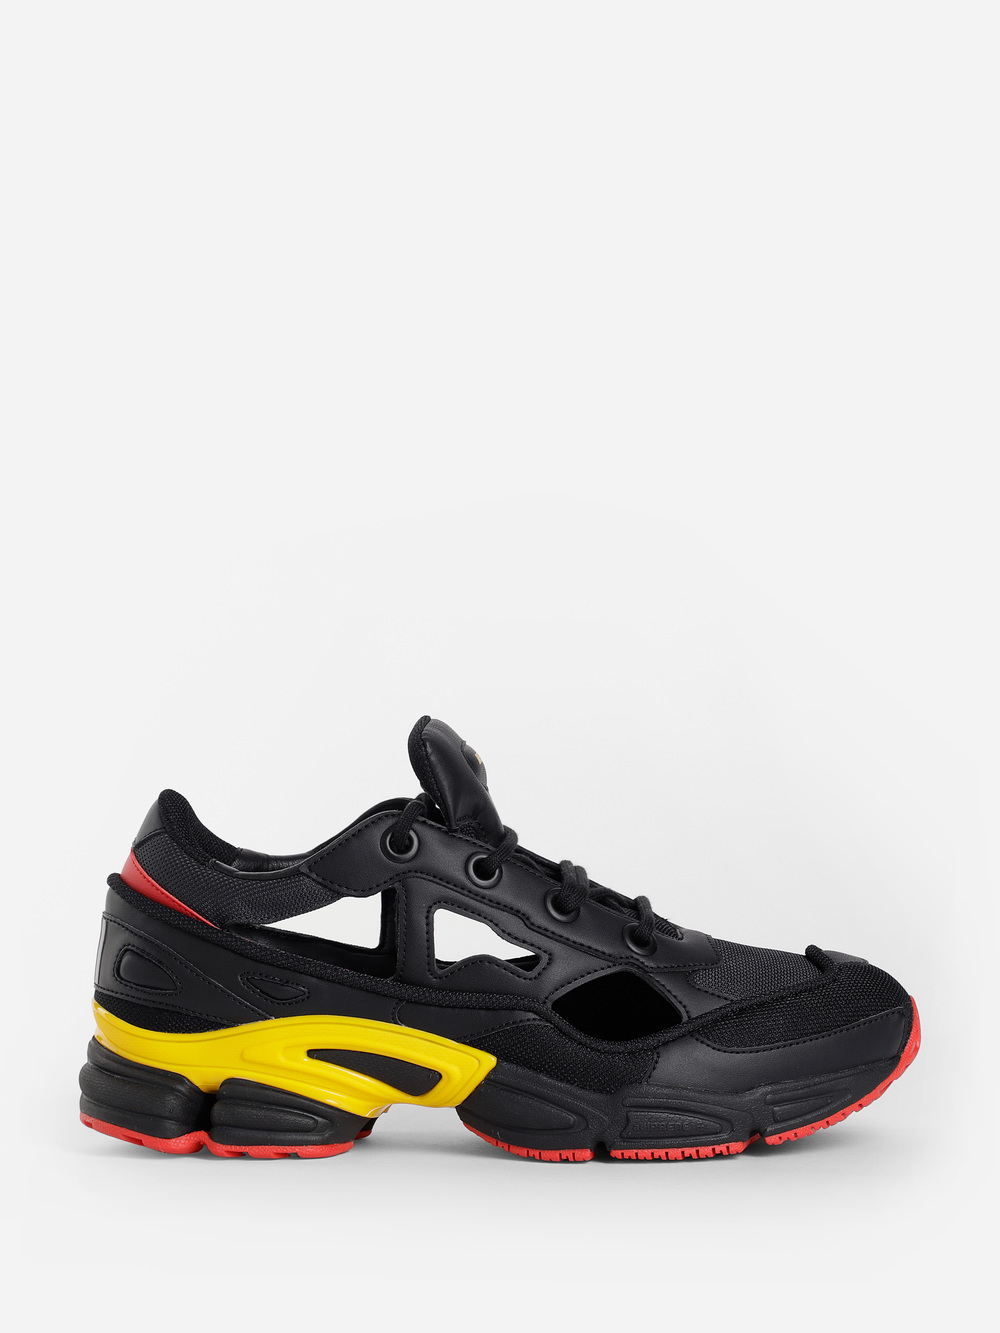 addff7d4d398 Raf Simons Sneakers In Black